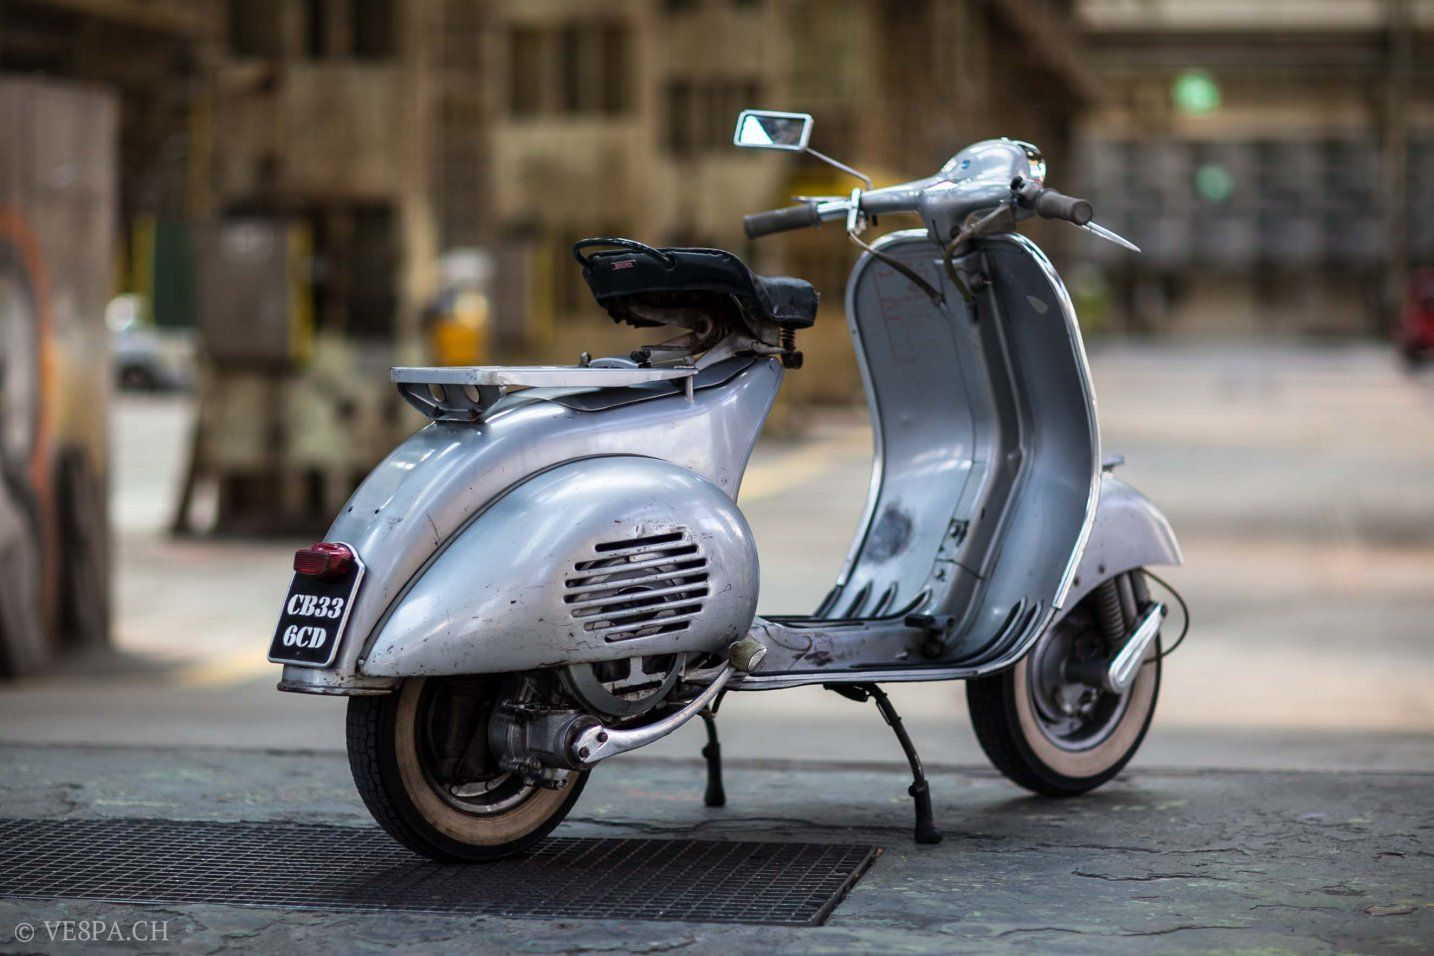 vespa a c m a 150 gl 2 wheelers scooter vespa piaggio. Black Bedroom Furniture Sets. Home Design Ideas